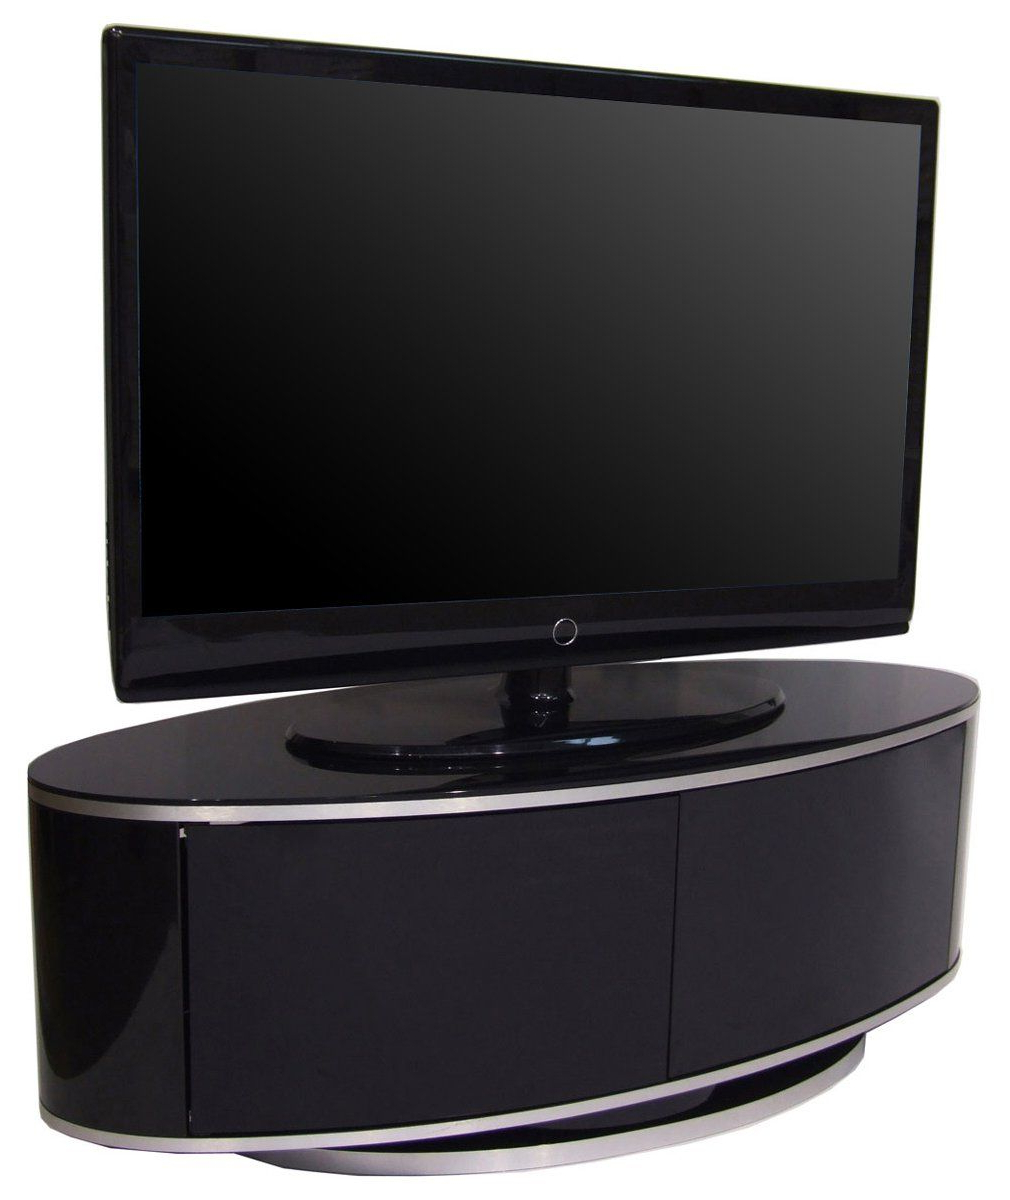 White Gloss Oval Tv Stands Pertaining To Most Up To Date Mda Designs High Gloss Black Oval Tv Stand With Swivel Base And (View 7 of 20)